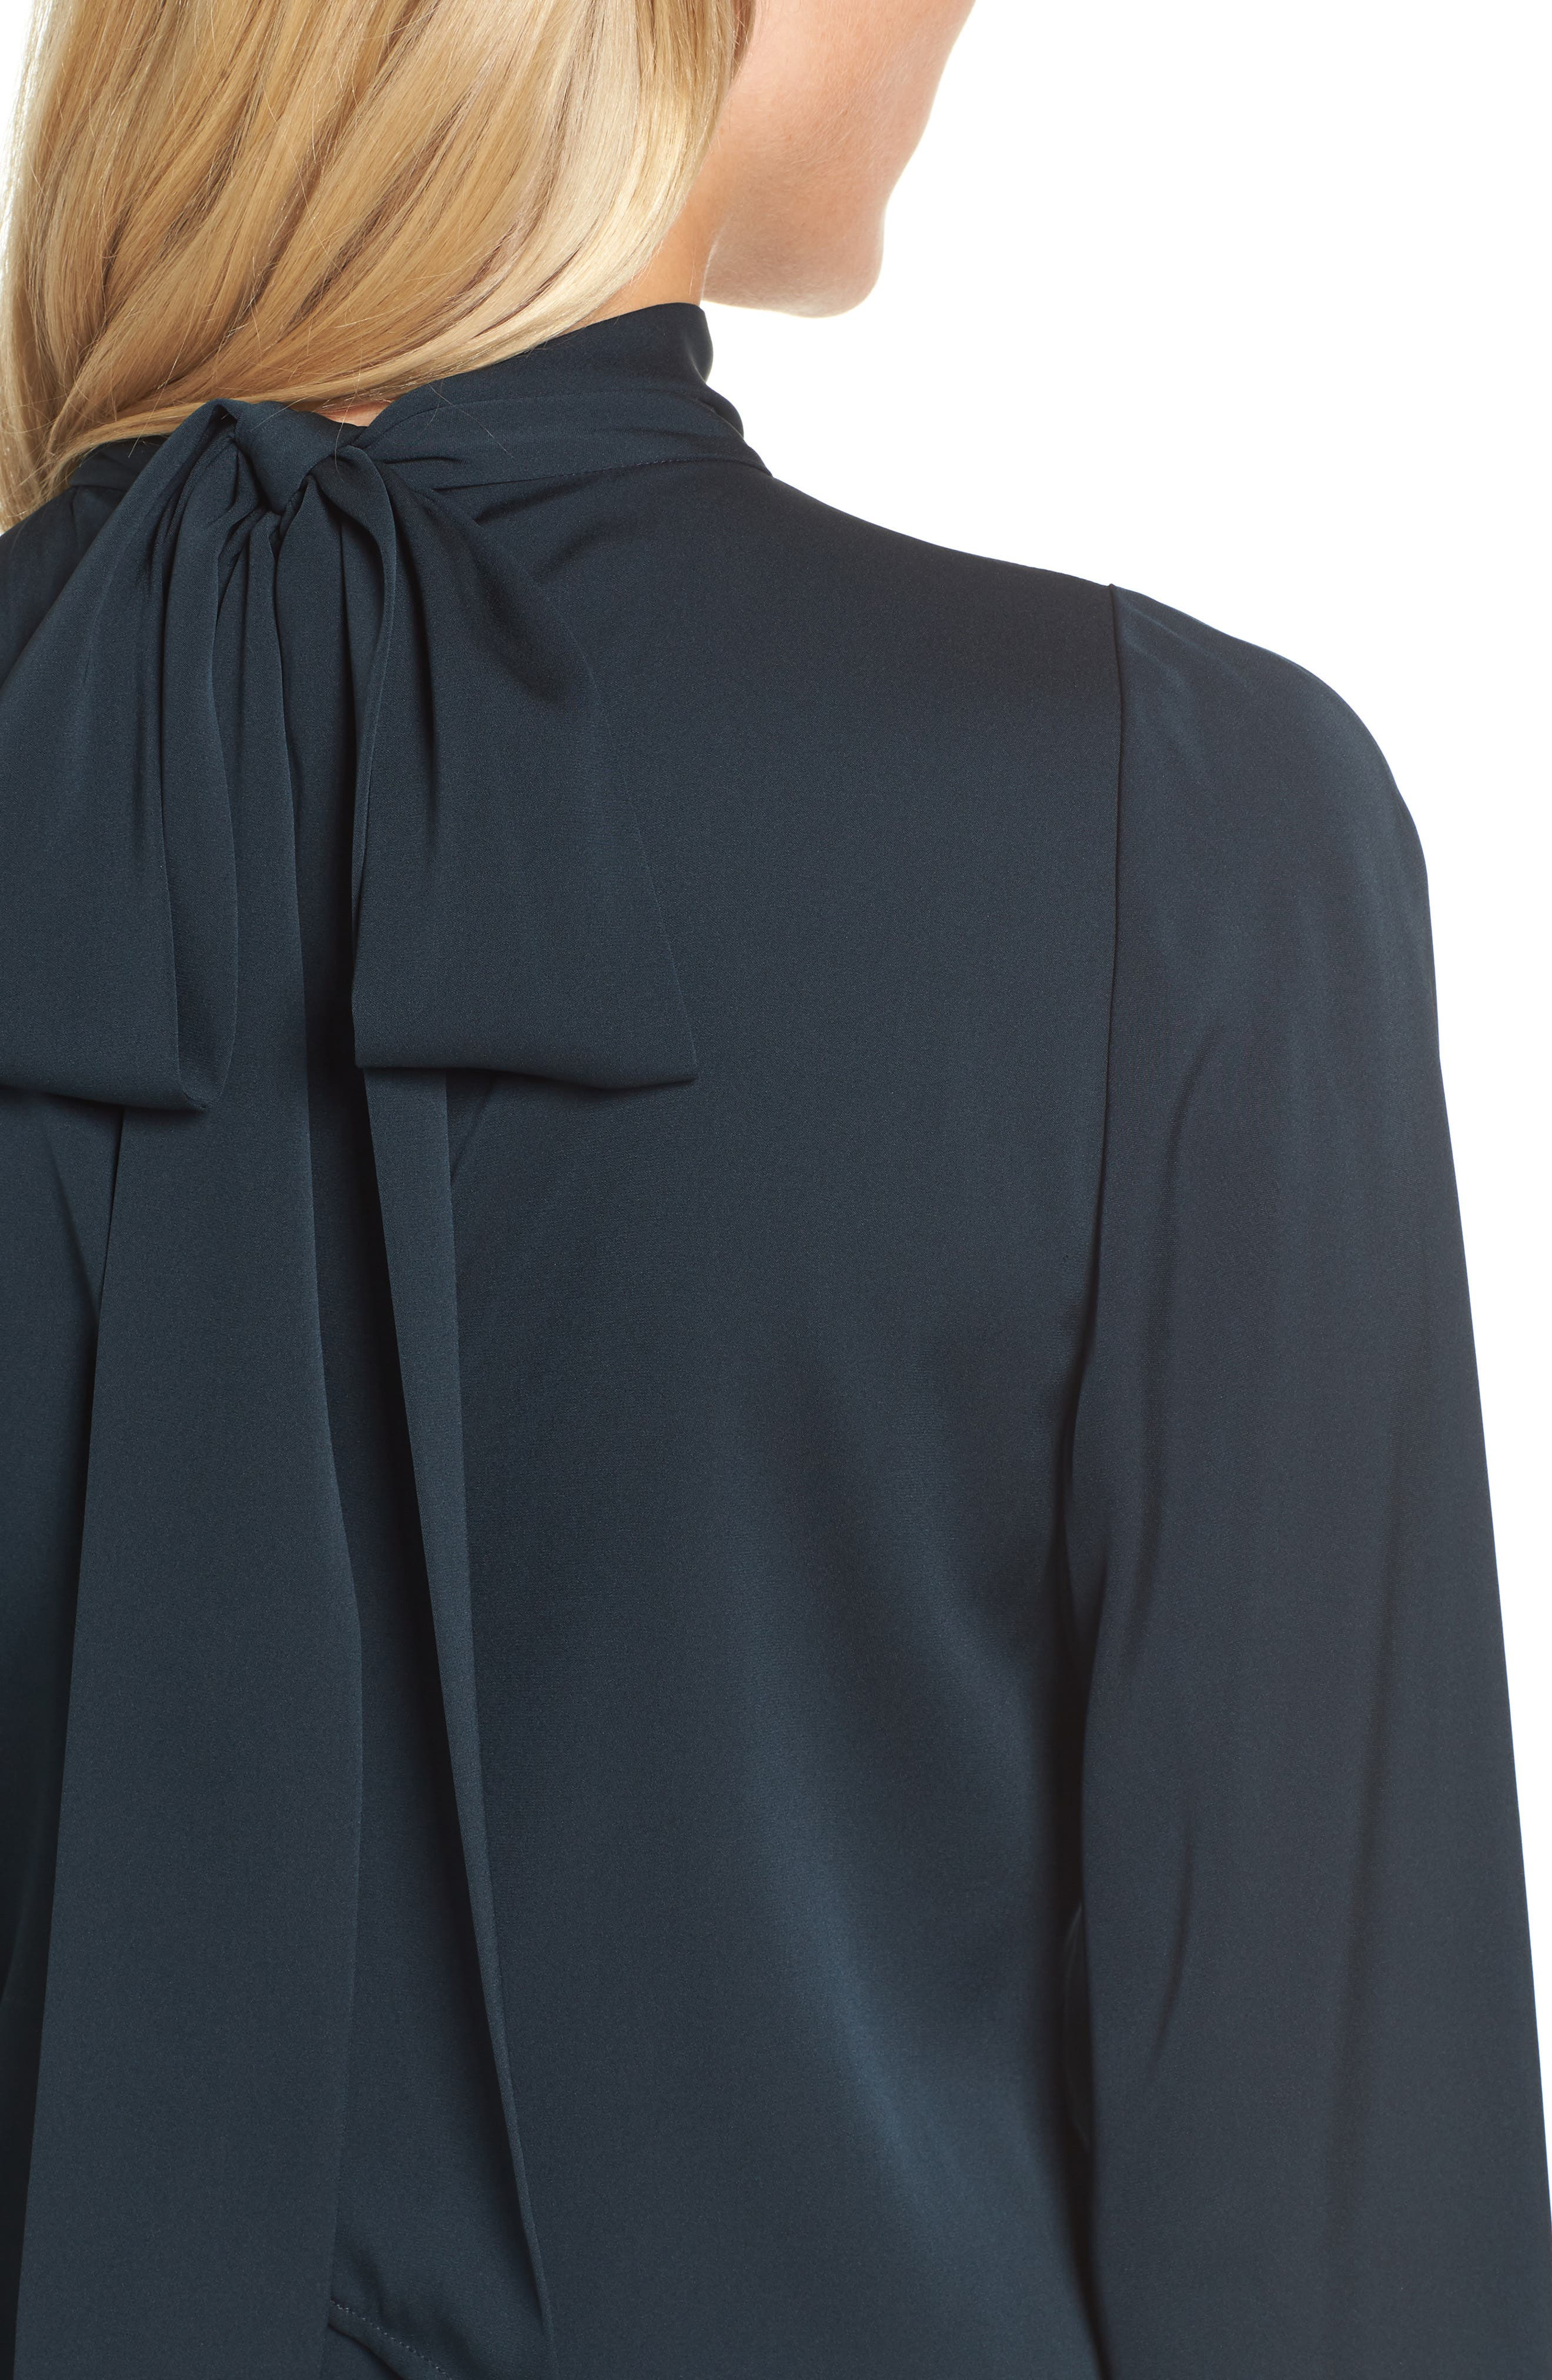 Alternate Image 4  - Lewit Tie Back Stretch Silk Blouse